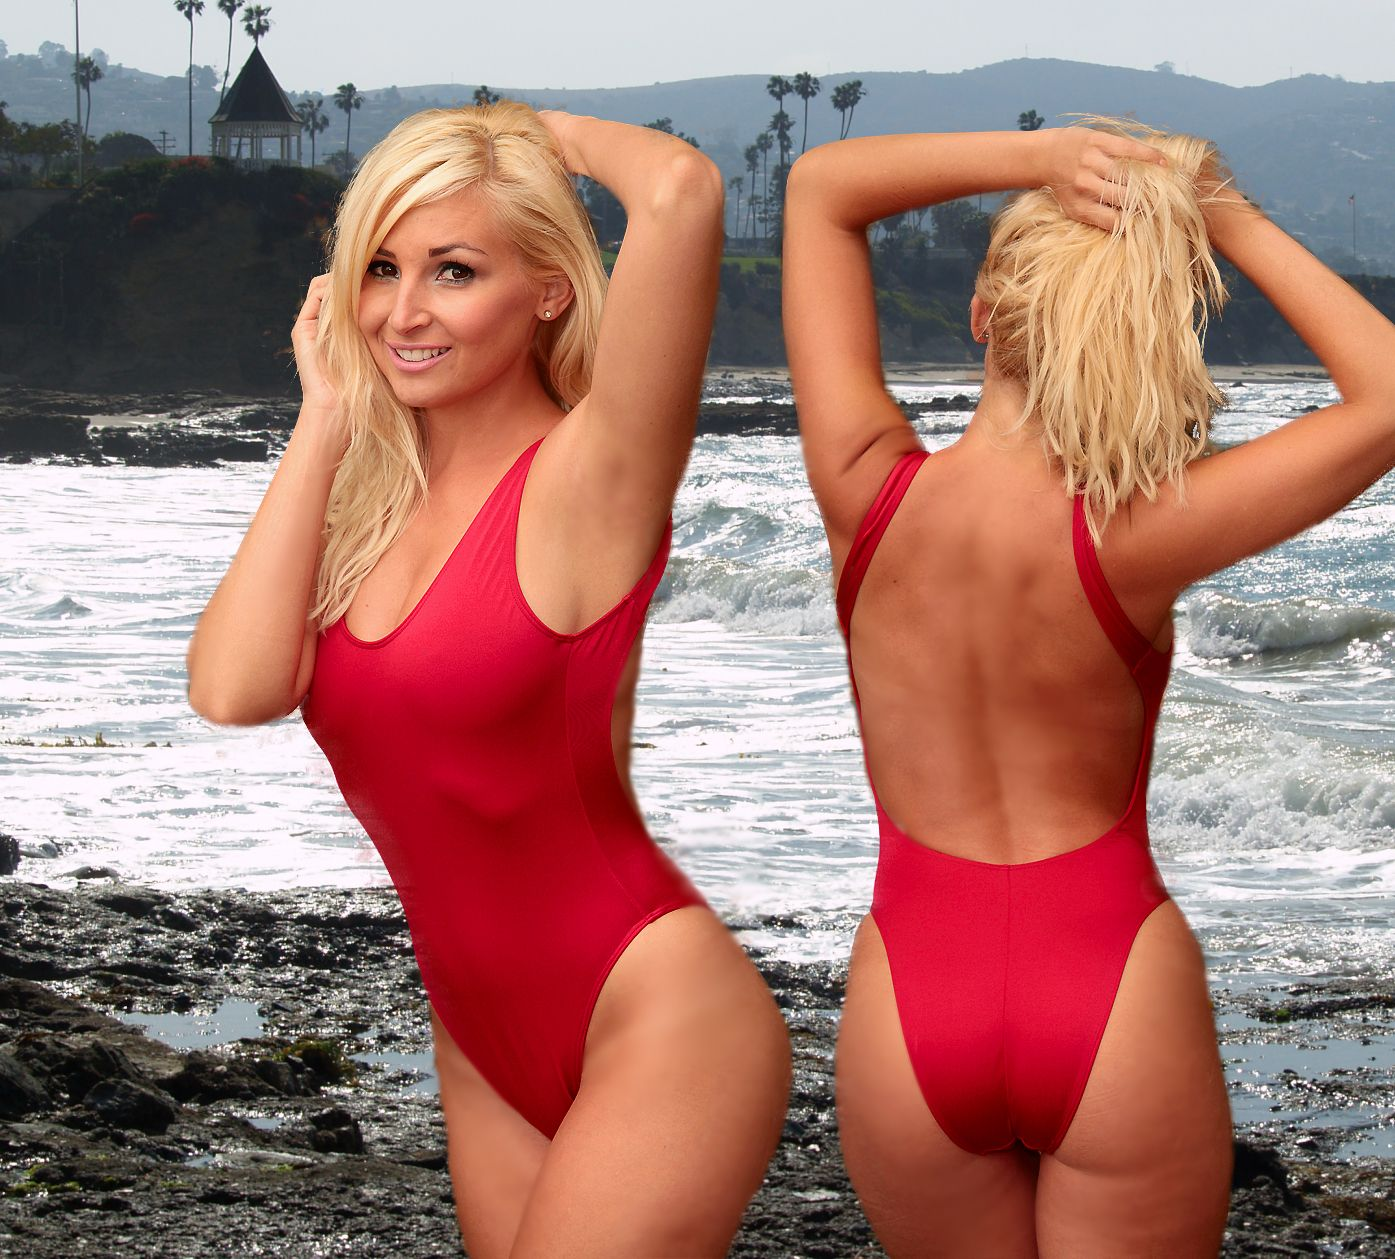 b996369fd9d The Baywatch style 2Scoops one piece swimsit by Brigitewear, be your own  Malibu Lifeguard